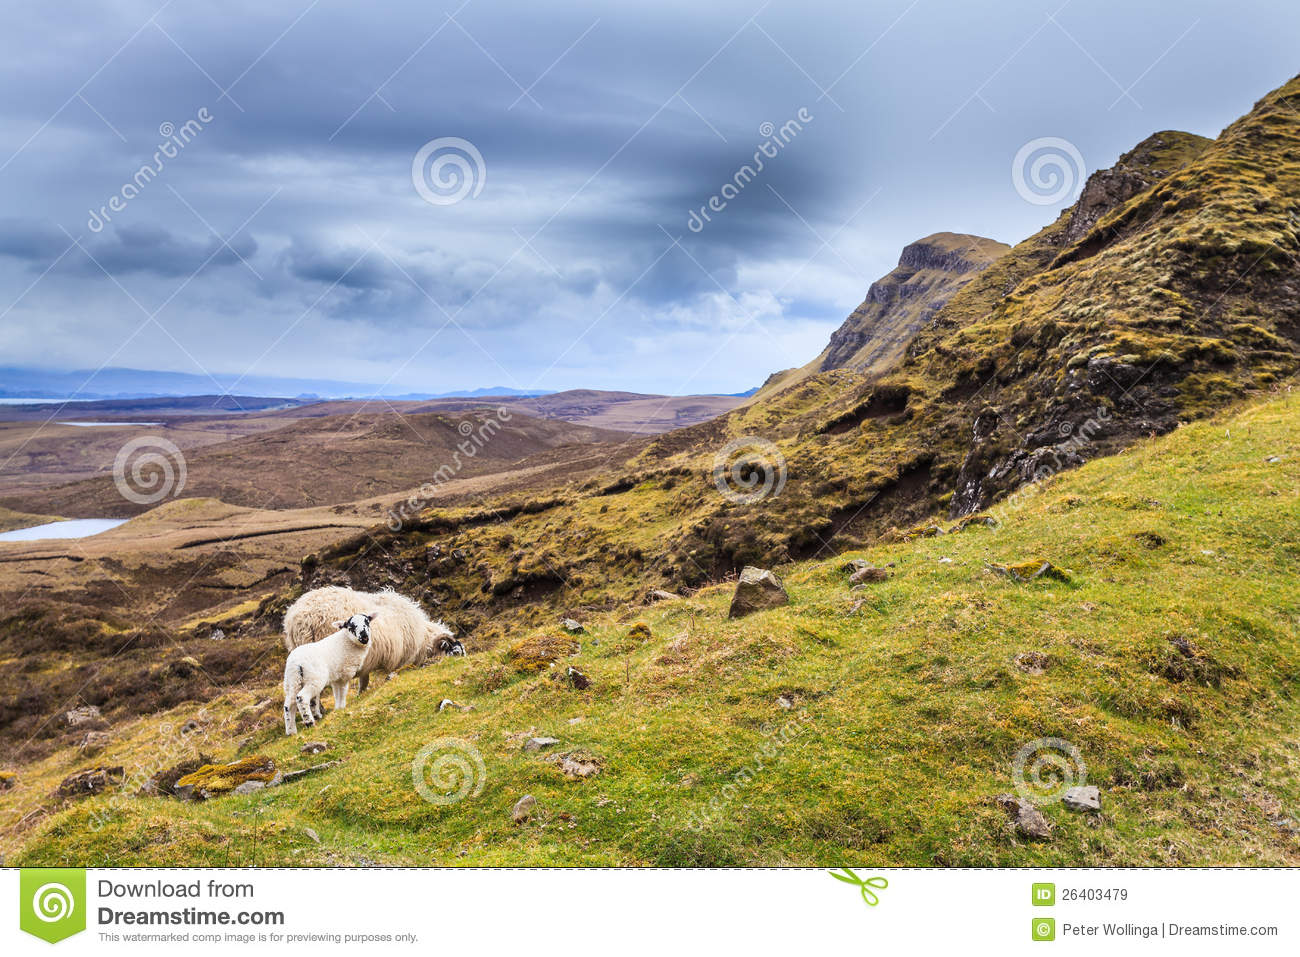 Sheep grazing in the highlands